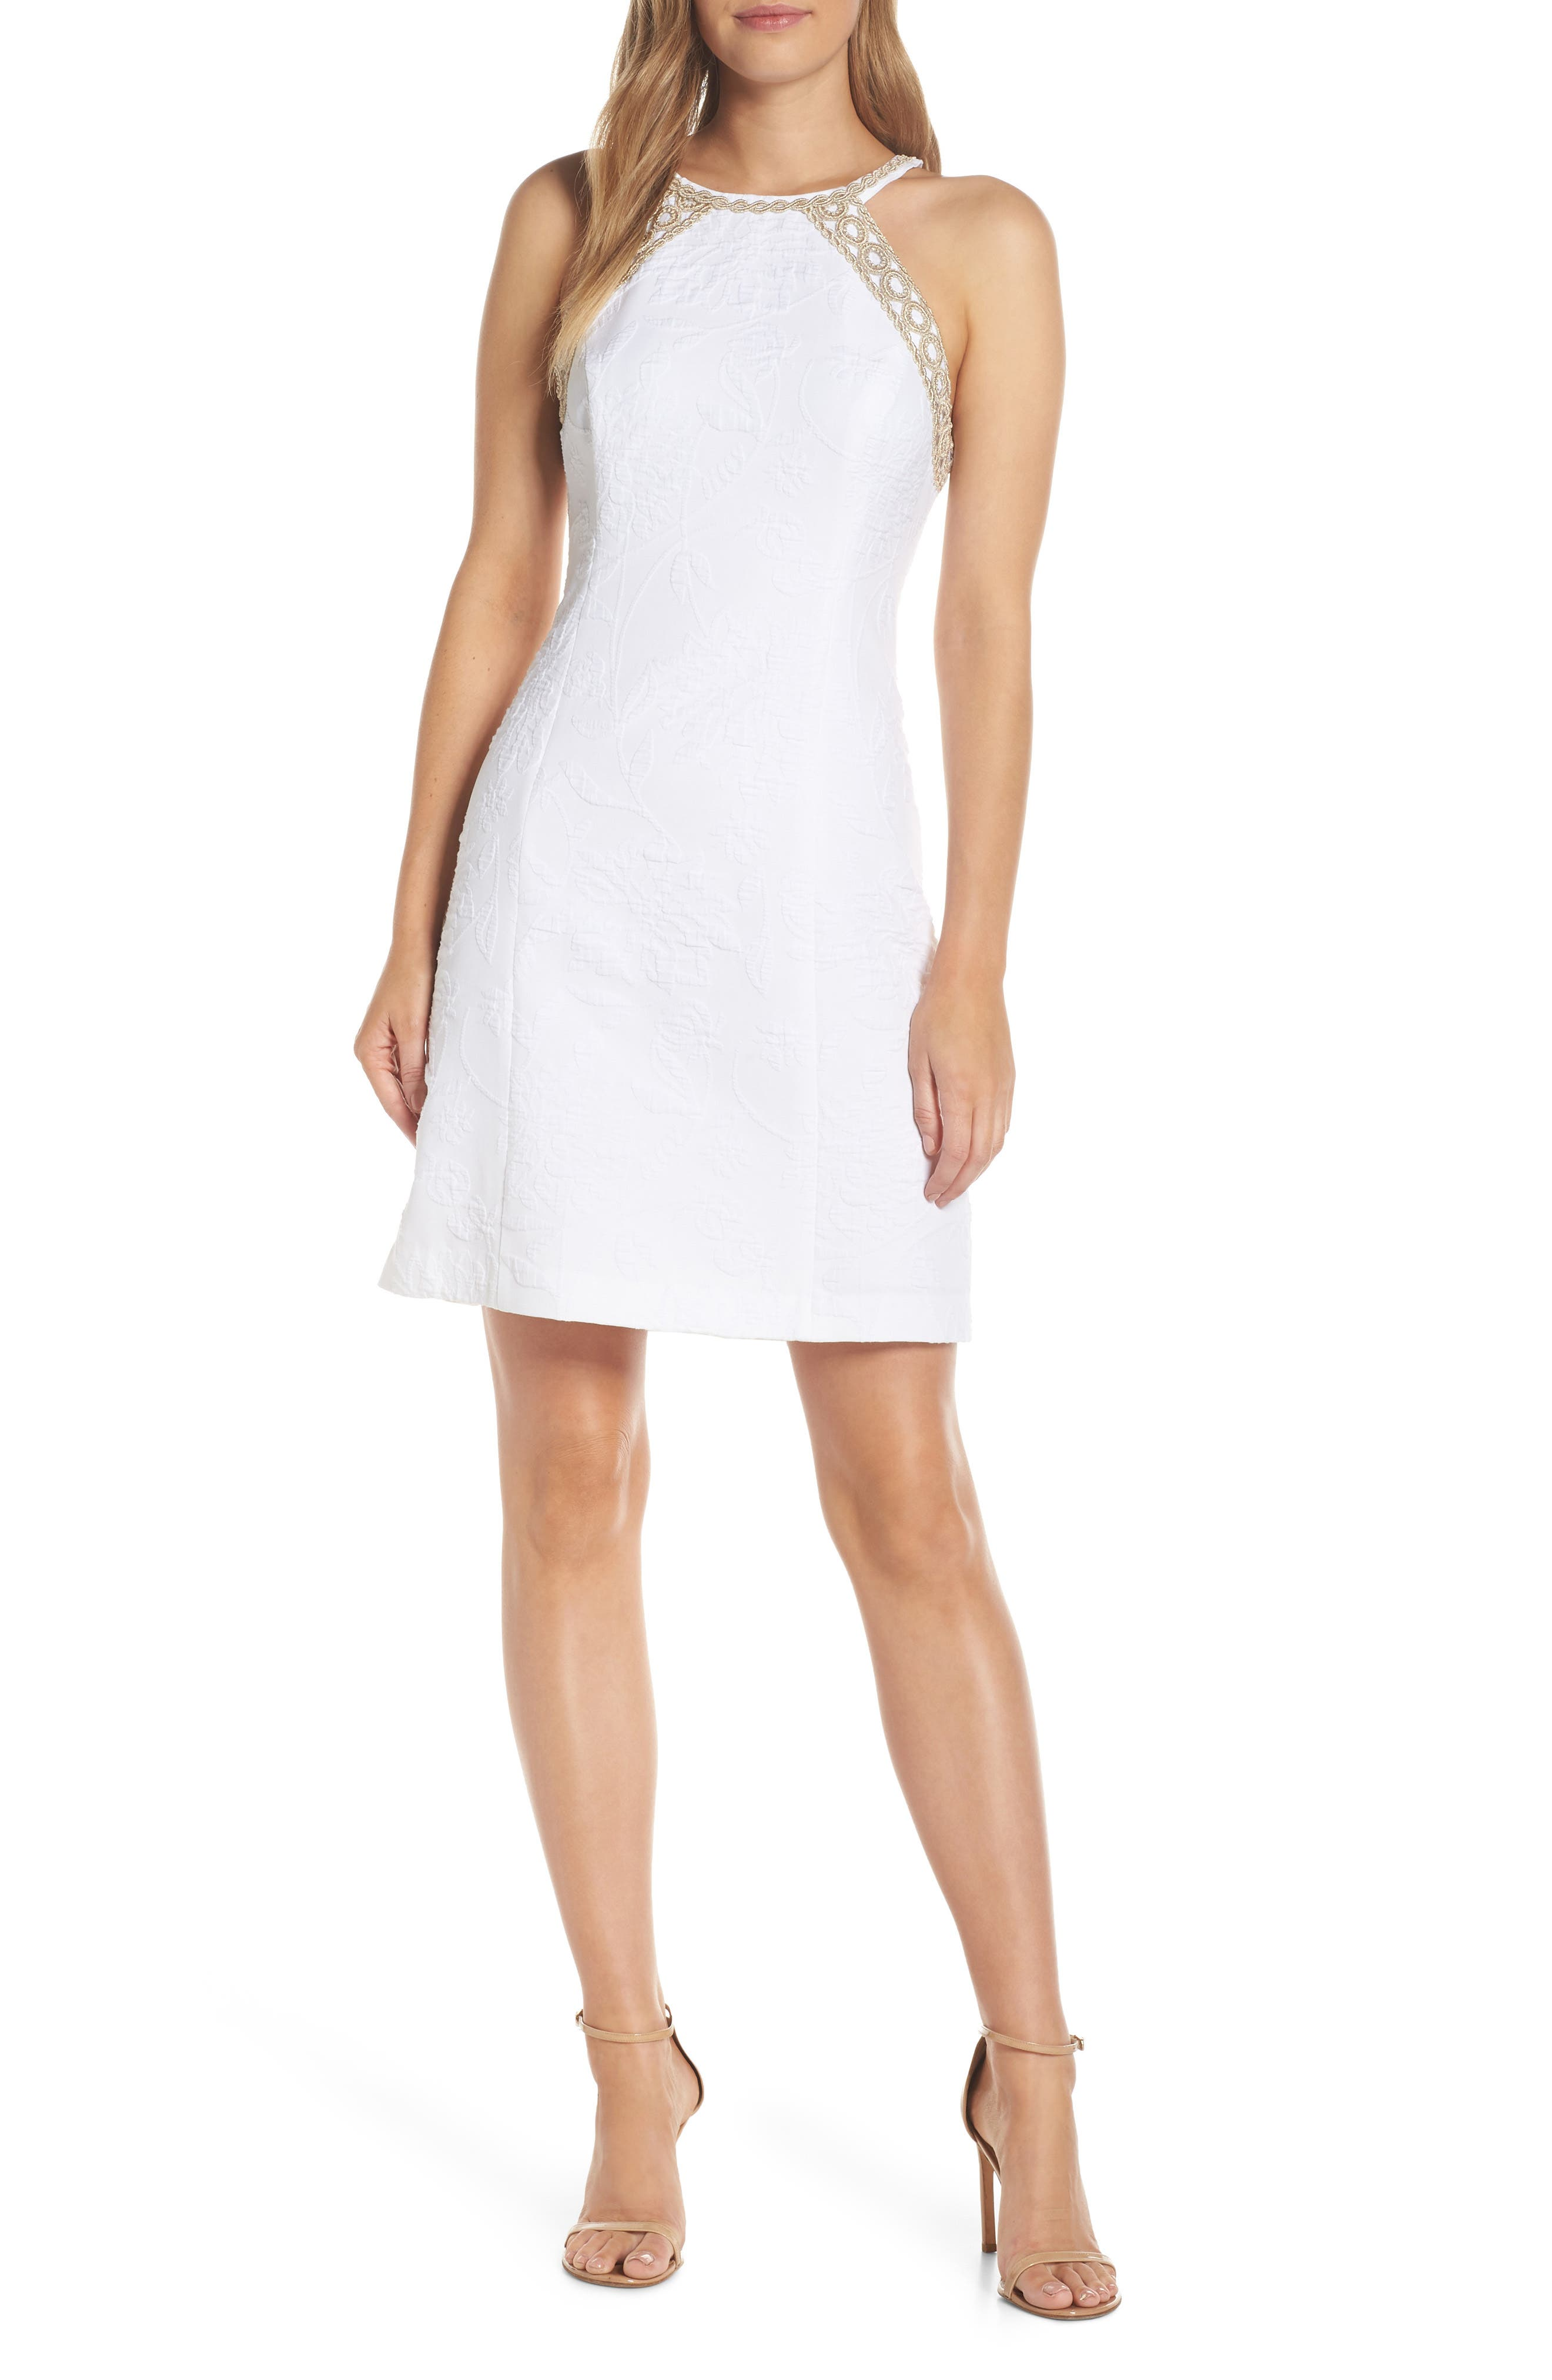 Pearl Stretch Shift Dress,                             Main thumbnail 1, color,                             RESORT WHITE CALIENTE PU